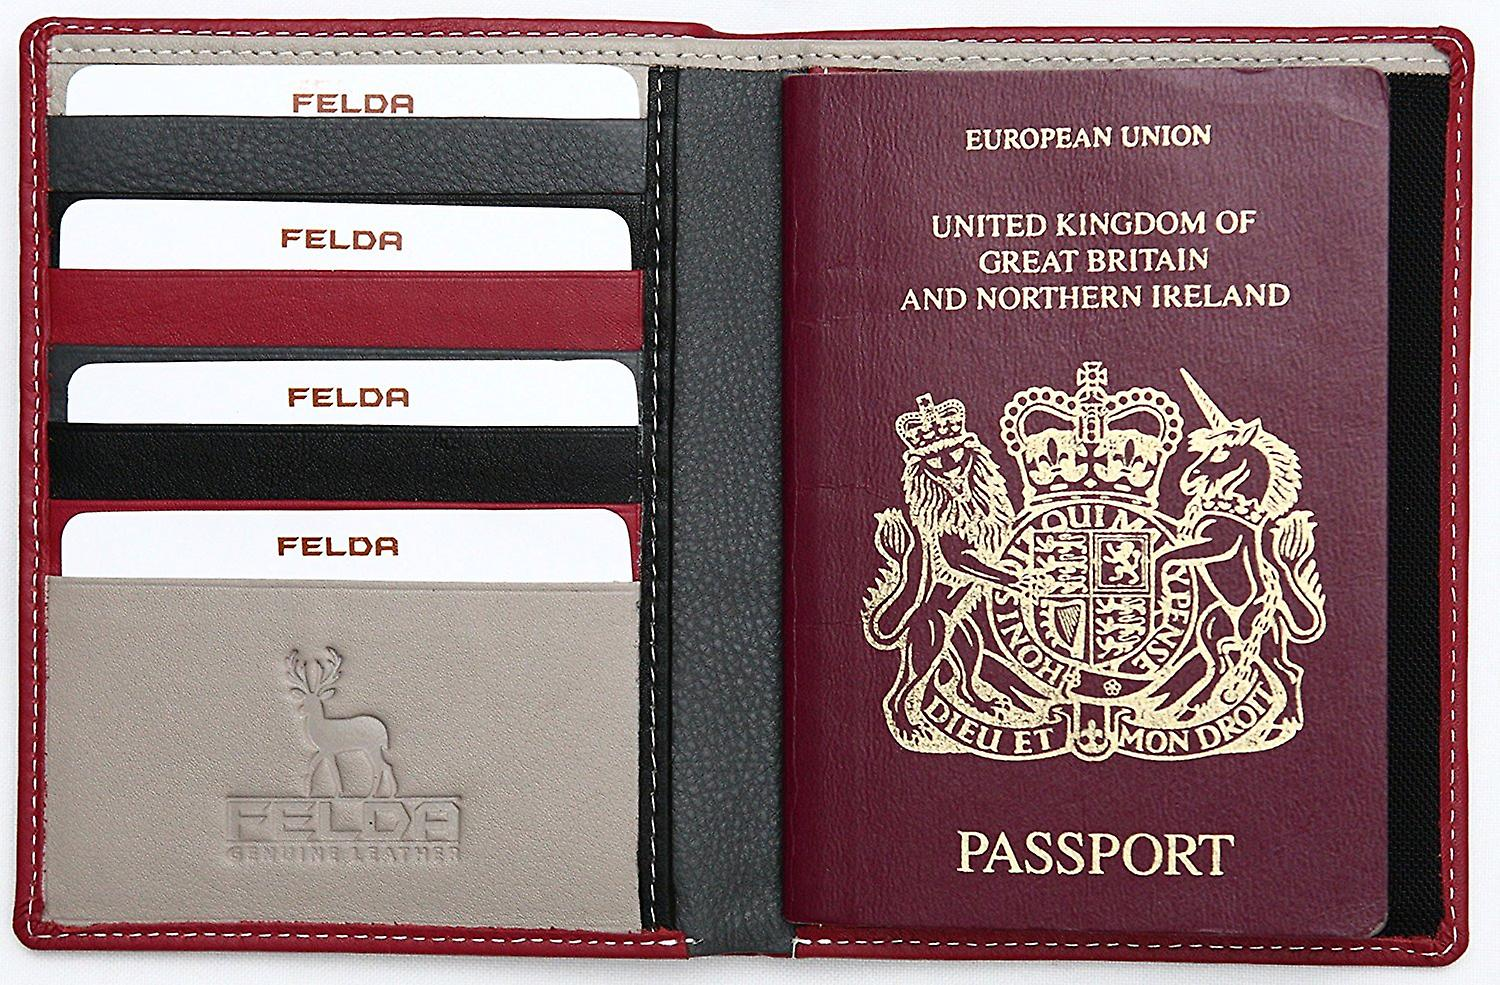 Rfid Leather Passport Cover Holder Travel Wallet With Credit Card Organizer (Black)